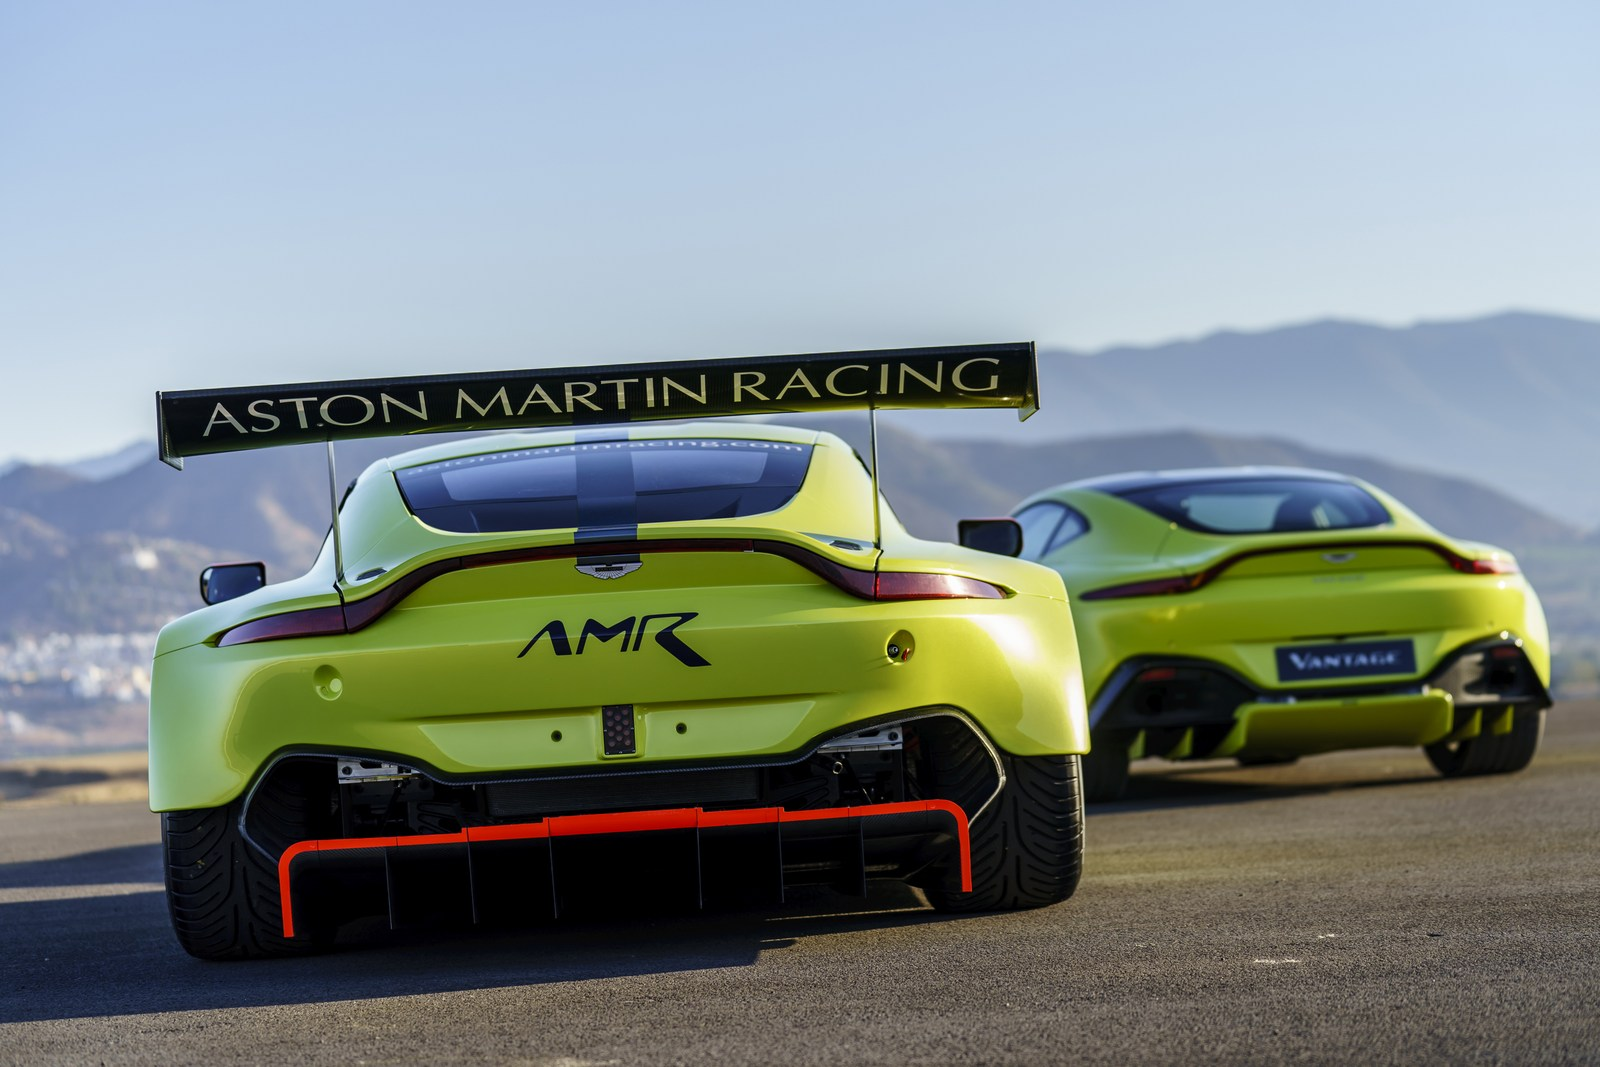 2018 aston martin vantage gte unveiled for the world endurance championship. Black Bedroom Furniture Sets. Home Design Ideas